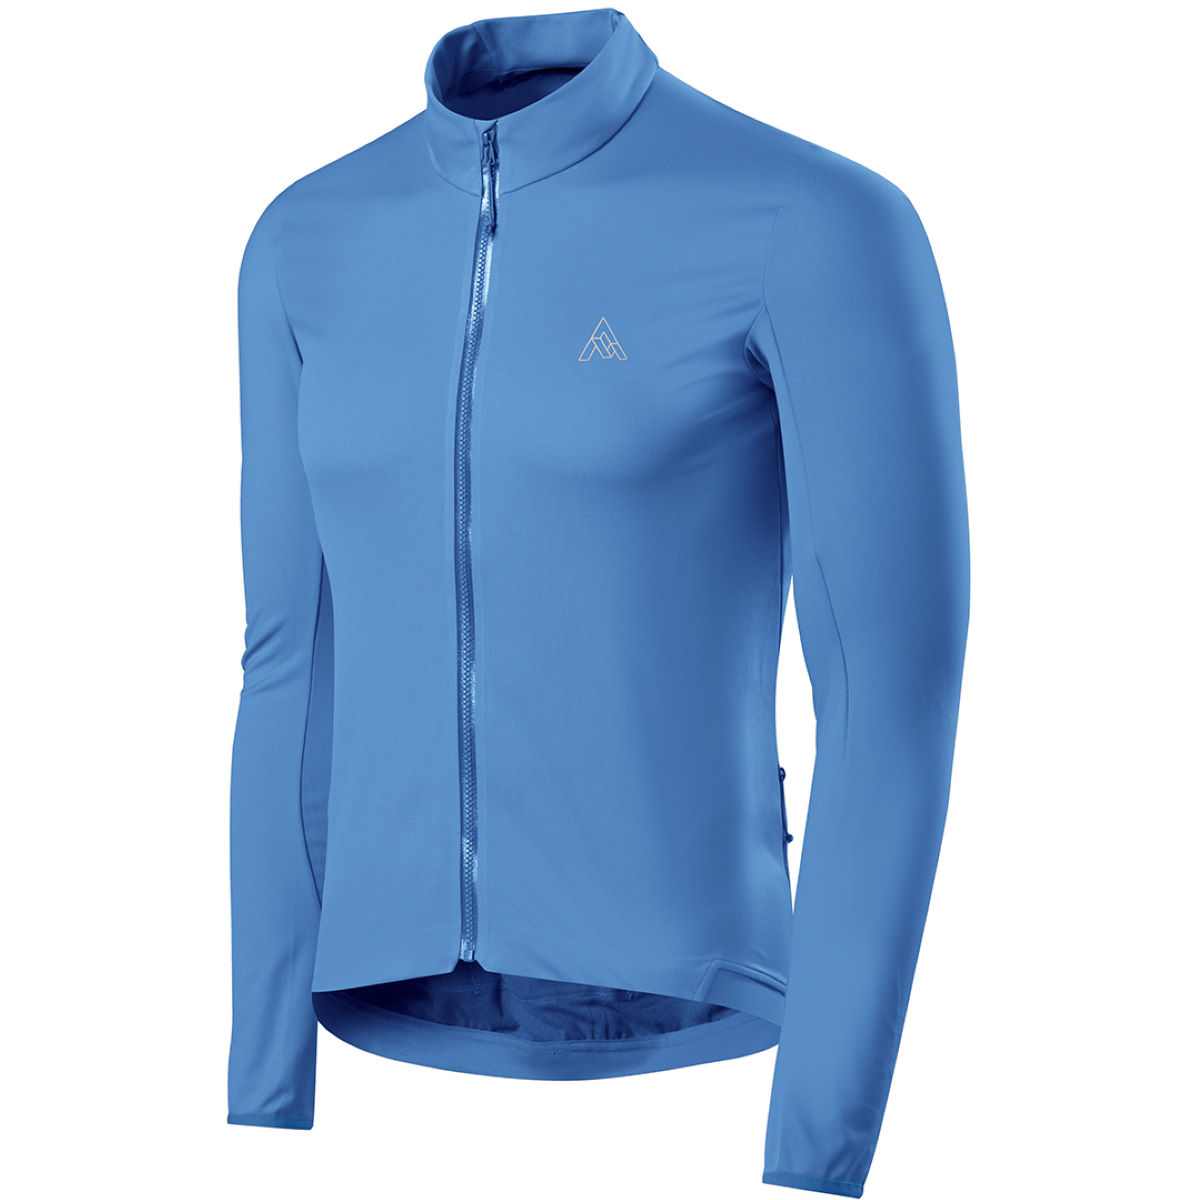 Maillot 7Mesh Synergy Windstopper (manches longues) - XL Blue Ox